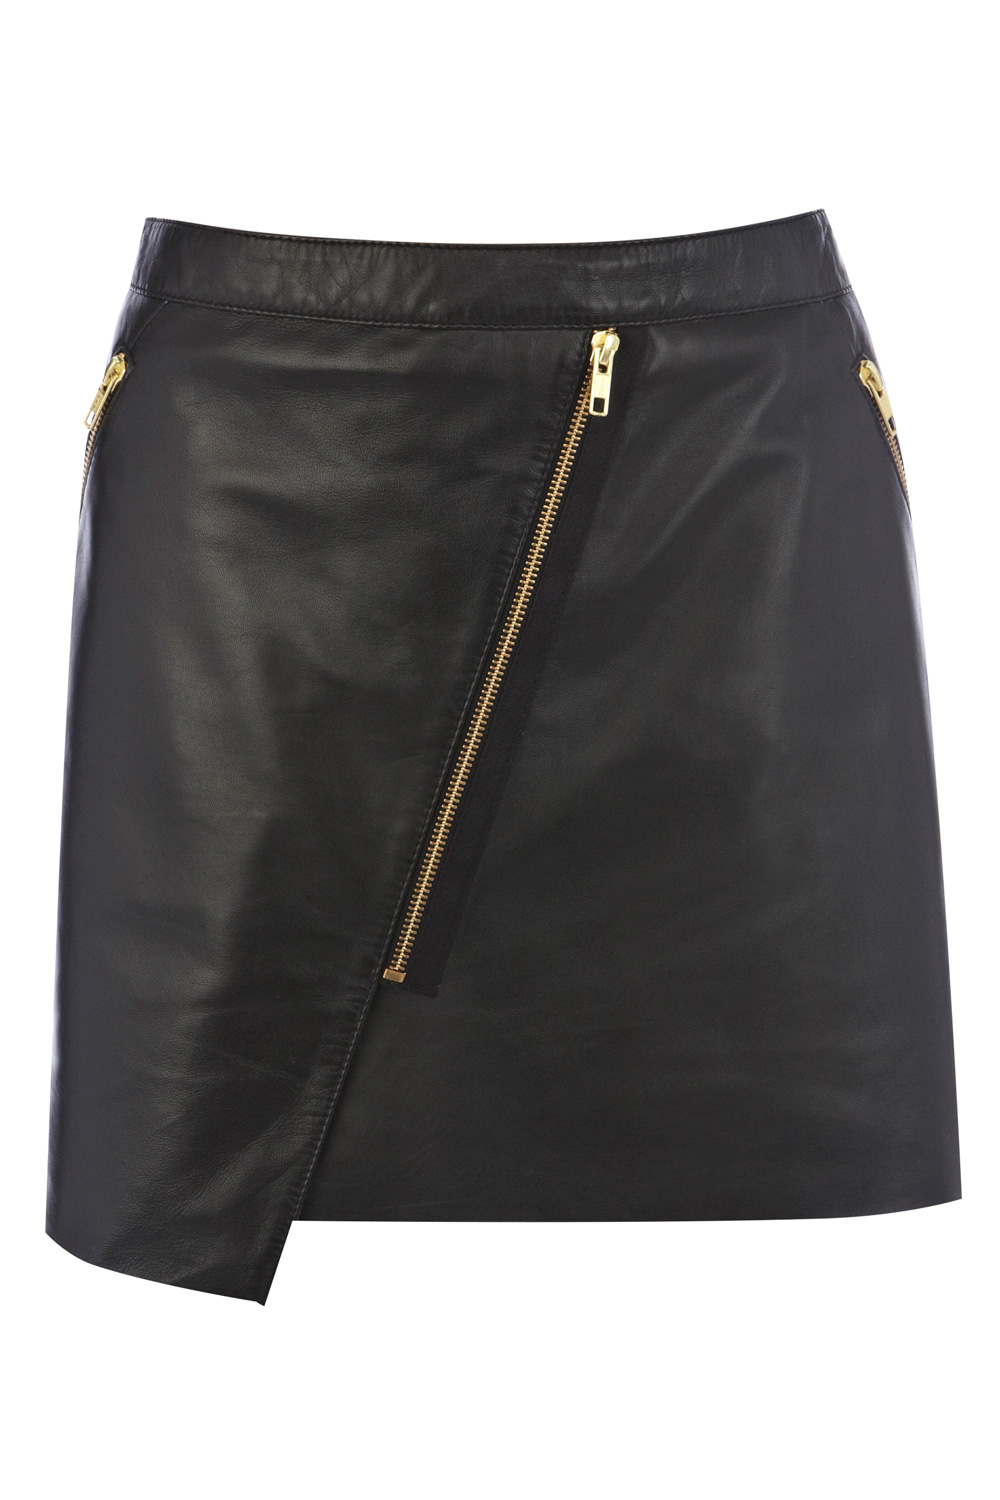 Warehouse leather Zip-front biker skirt £75